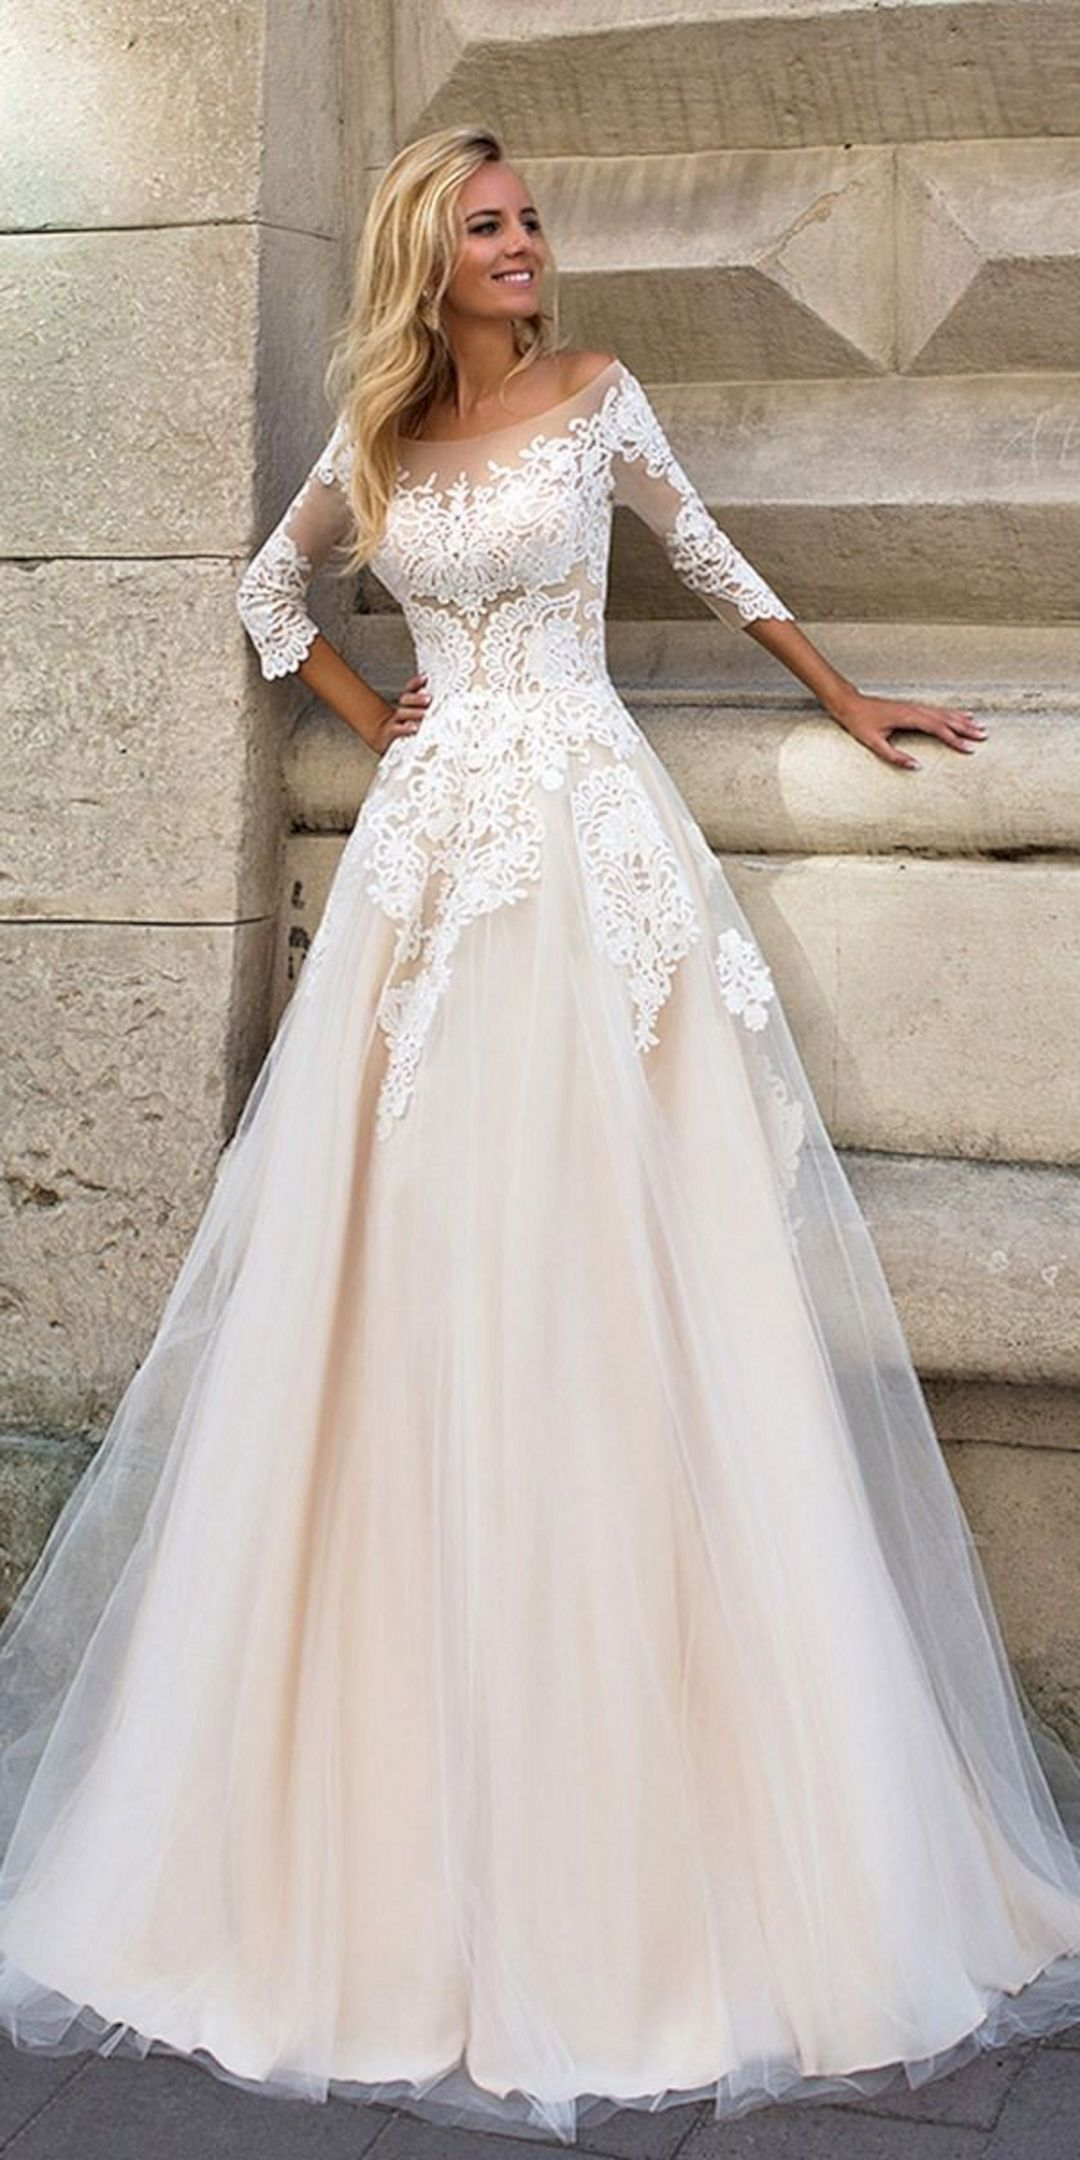 bf58d1b87e Adorable Say Yes To The Dress  Super Beautiful Wedding Dresses Design 2018 ( 25+